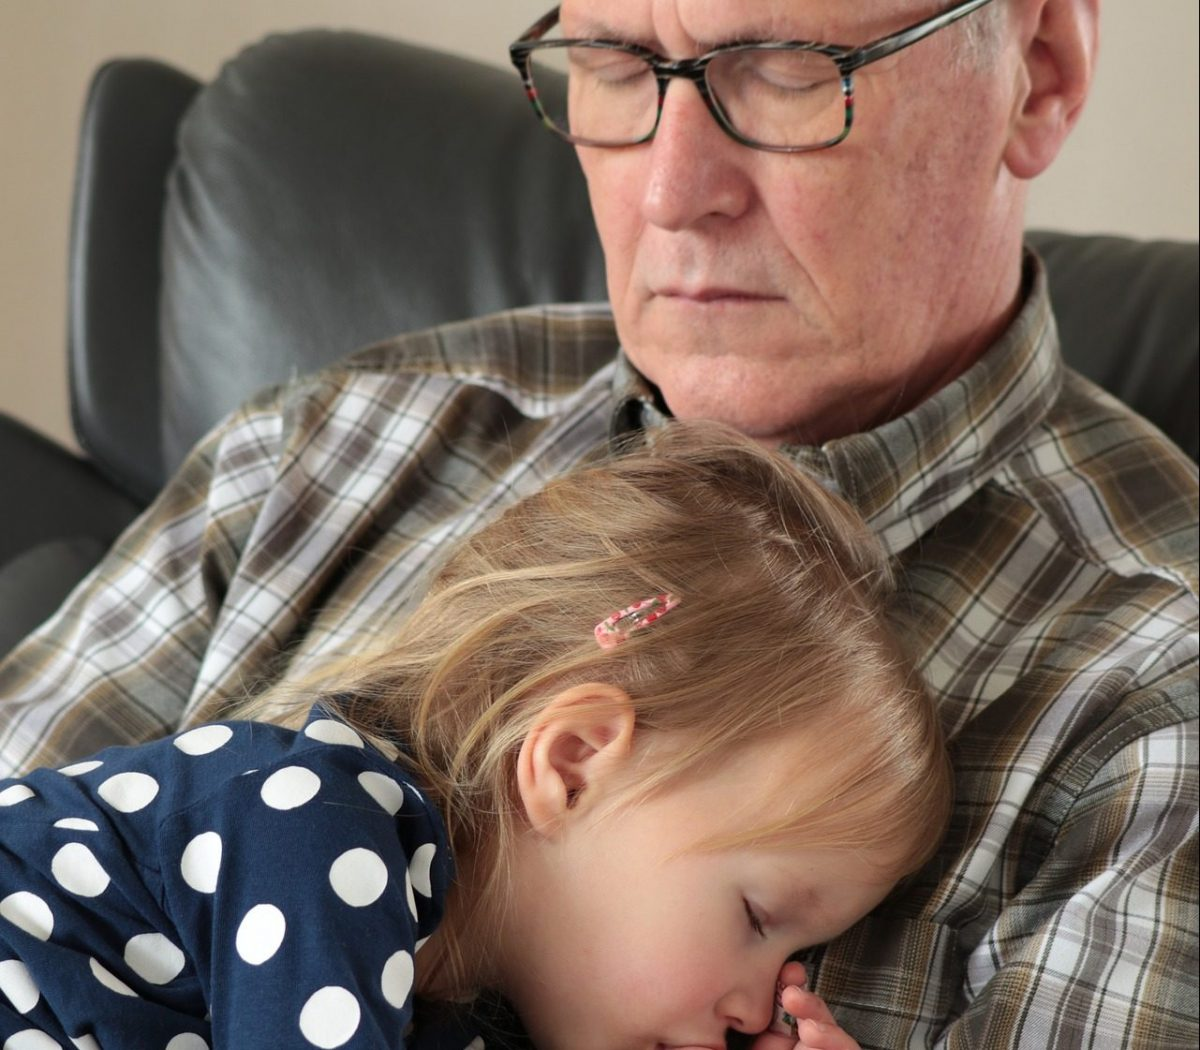 child girl sleeping in her grandfather's arms